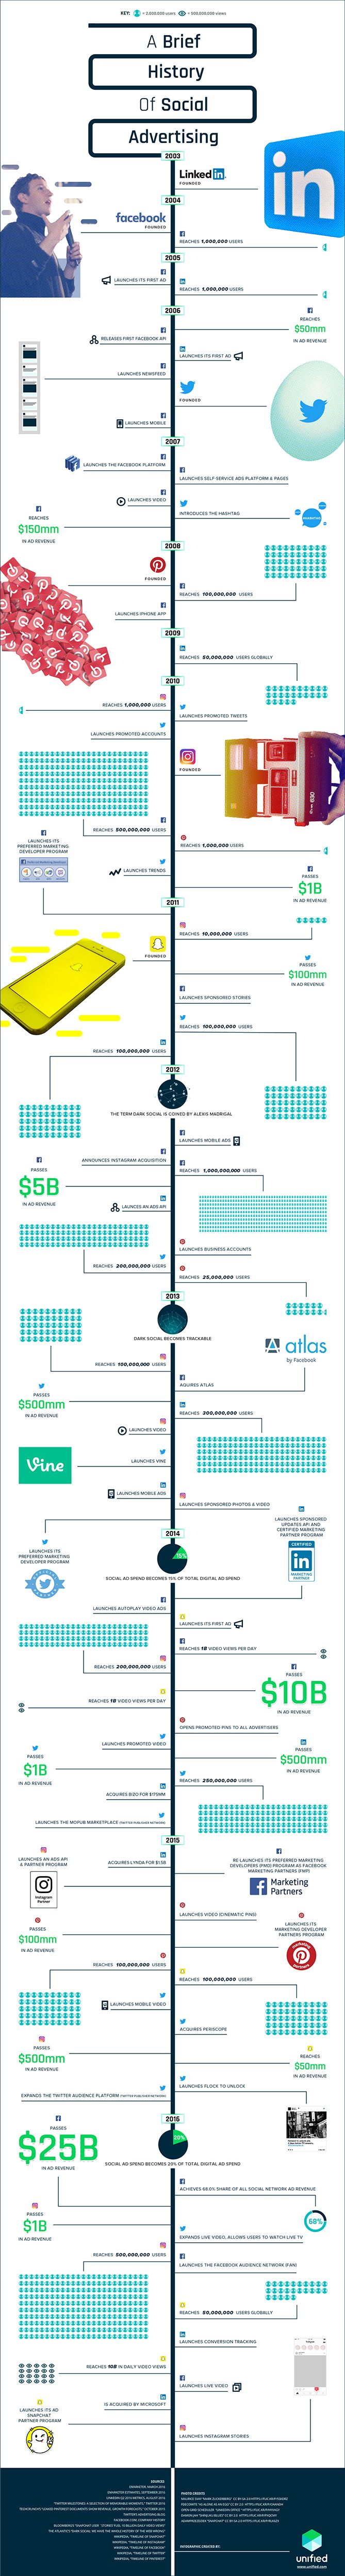 How has social advertising evolved over the past 10+ years? Check out just how far we've come.